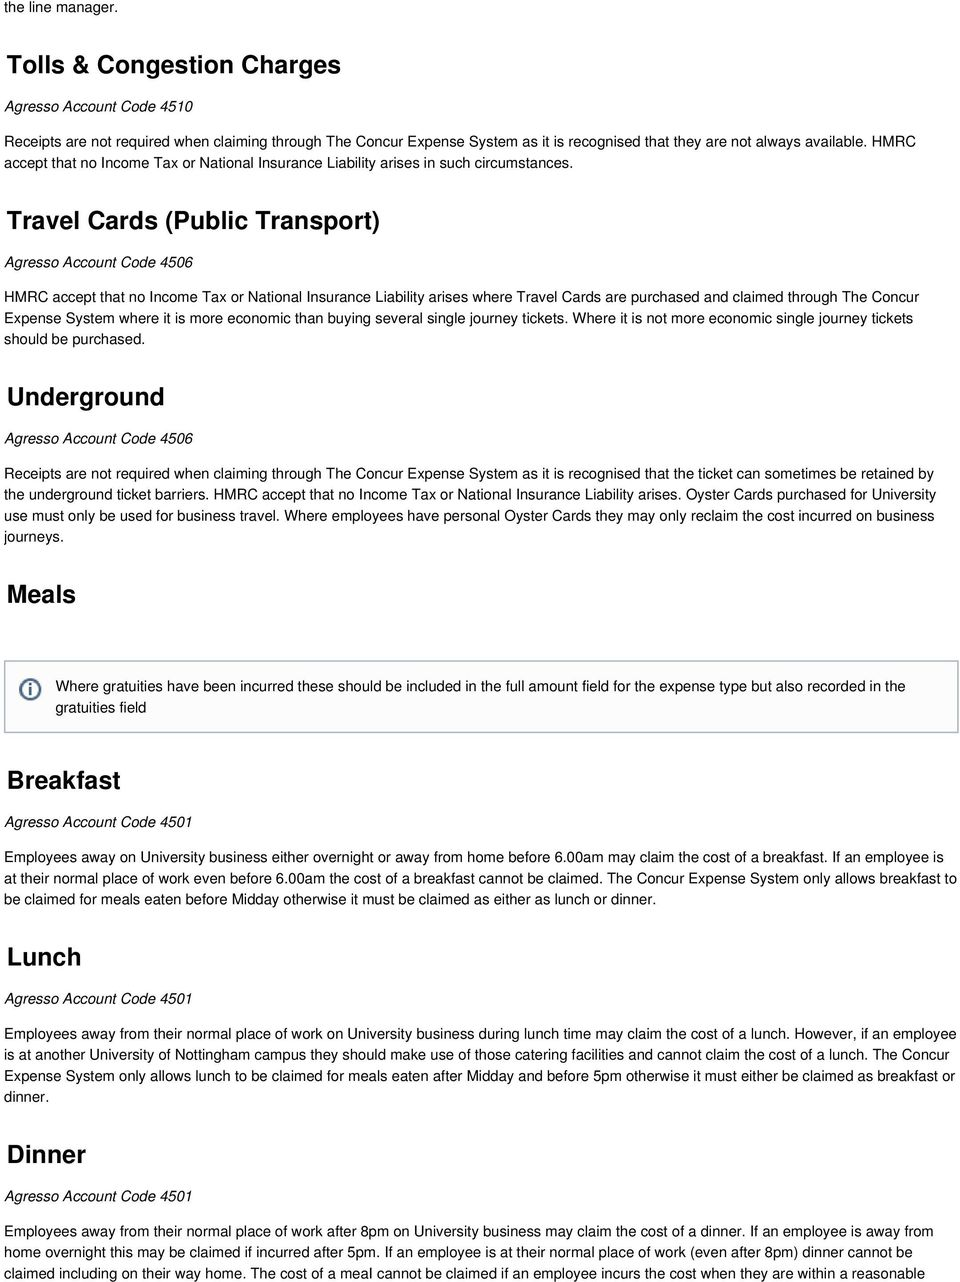 Travel Cards (Public Transport) HMRC accept that no Income Tax or National Insurance Liability arises where Travel Cards are purchased and claimed through The Concur Expense System where it is more